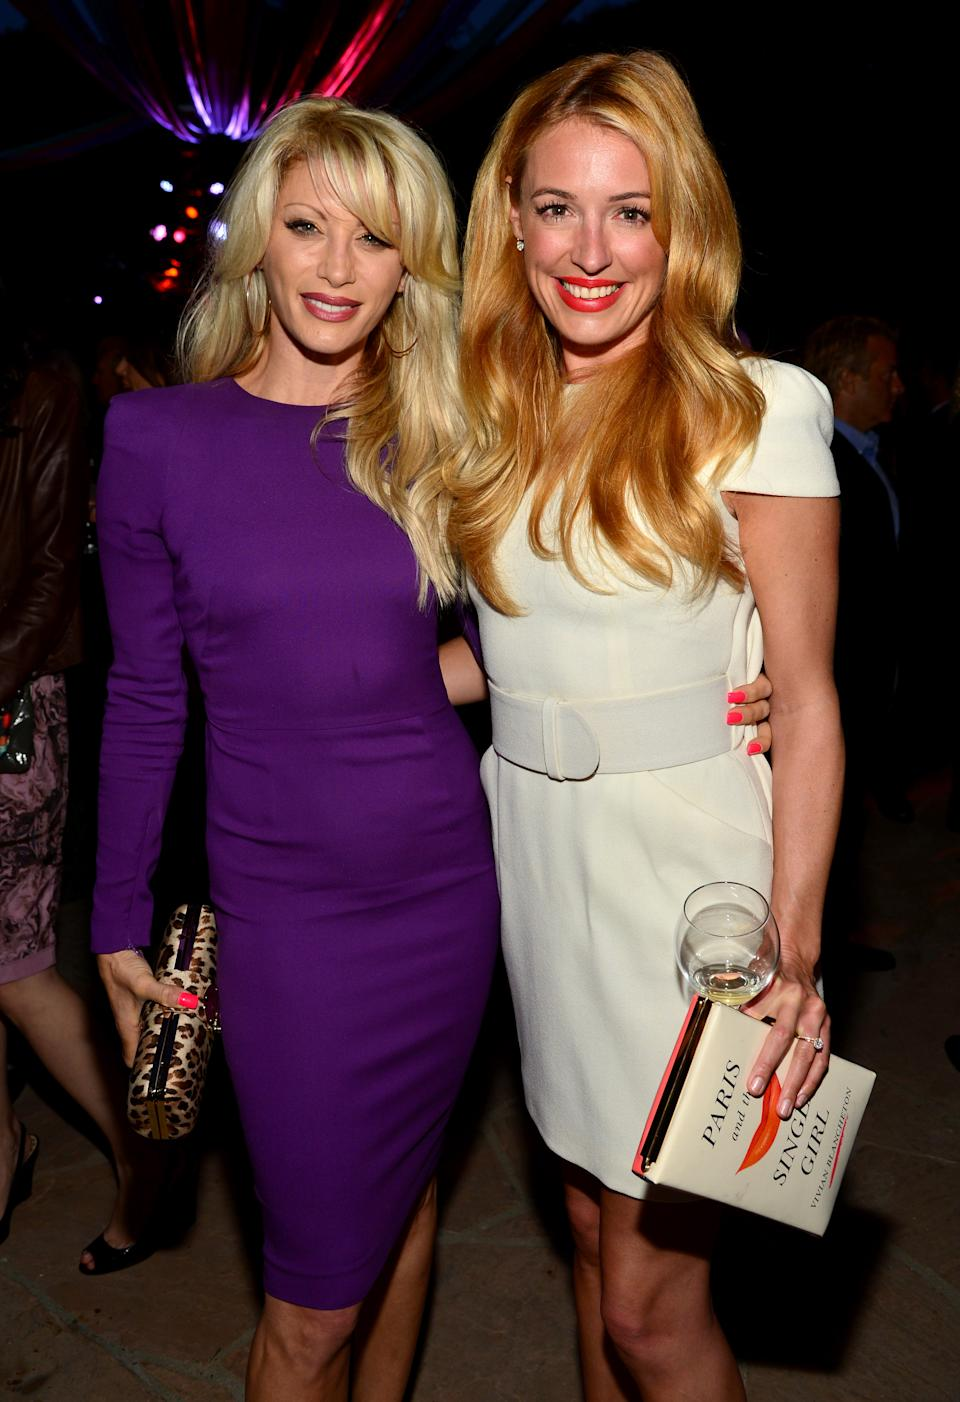 LOS ANGELES, CA - APRIL 22: TV personalities Dani Behr (L) and Cat Deeley attend the 8th Annual BritWeek Launch Party at a private residence on April 22, 2014 in Los Angeles, California. (Photo by Frazer Harrison/Getty Images)